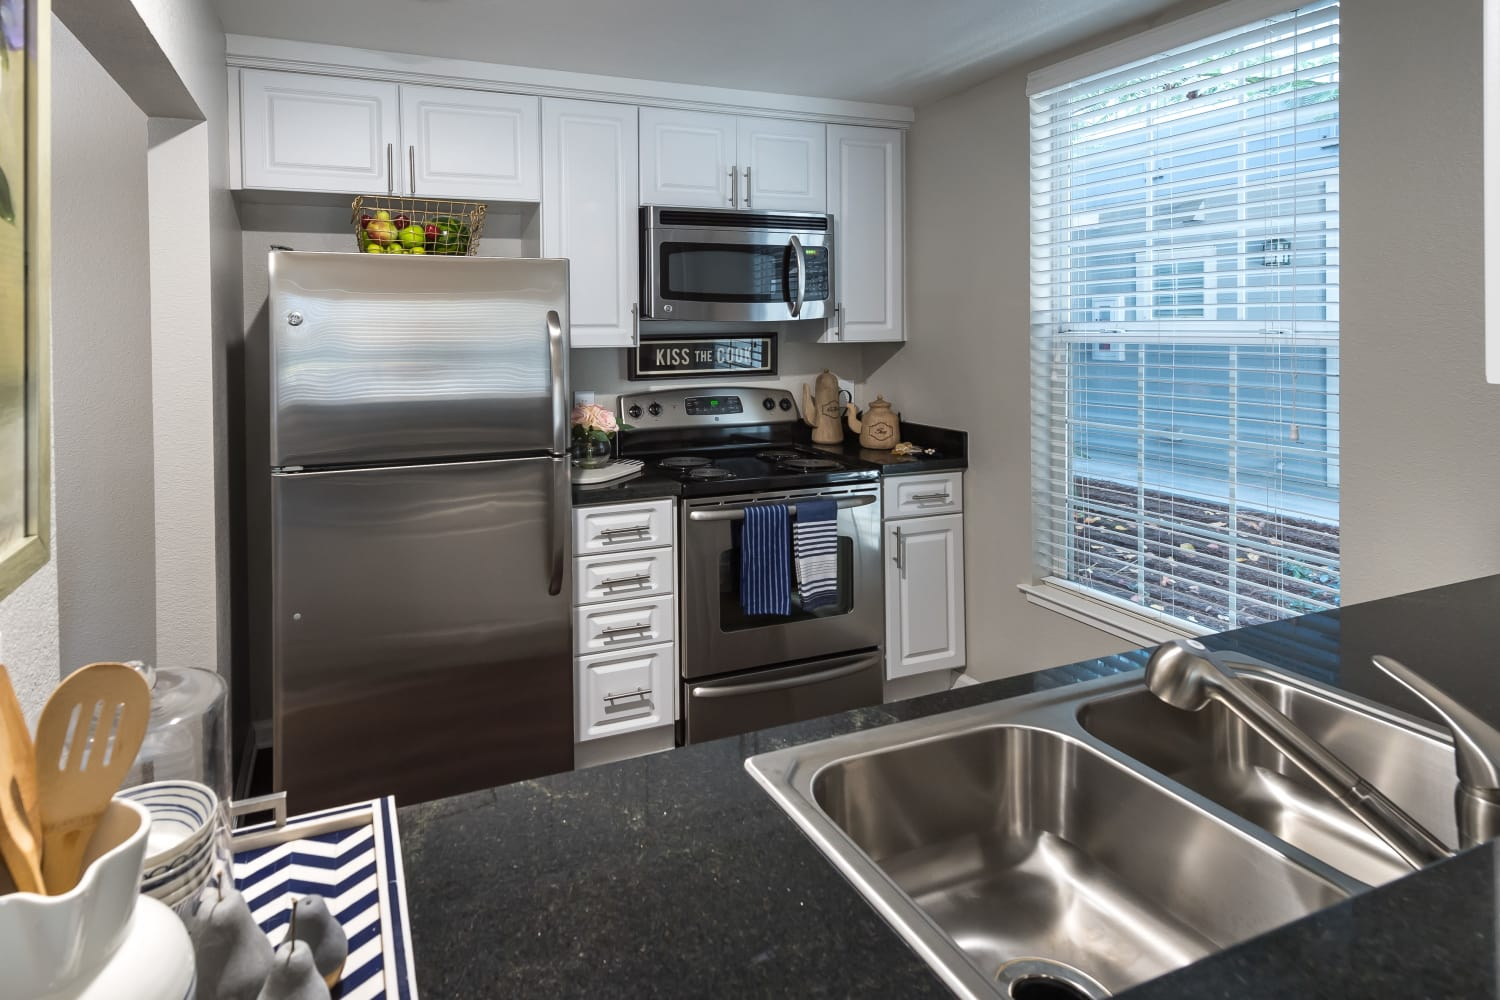 Renovated kitchen at Nantucket Apartments in Santa Clara, California